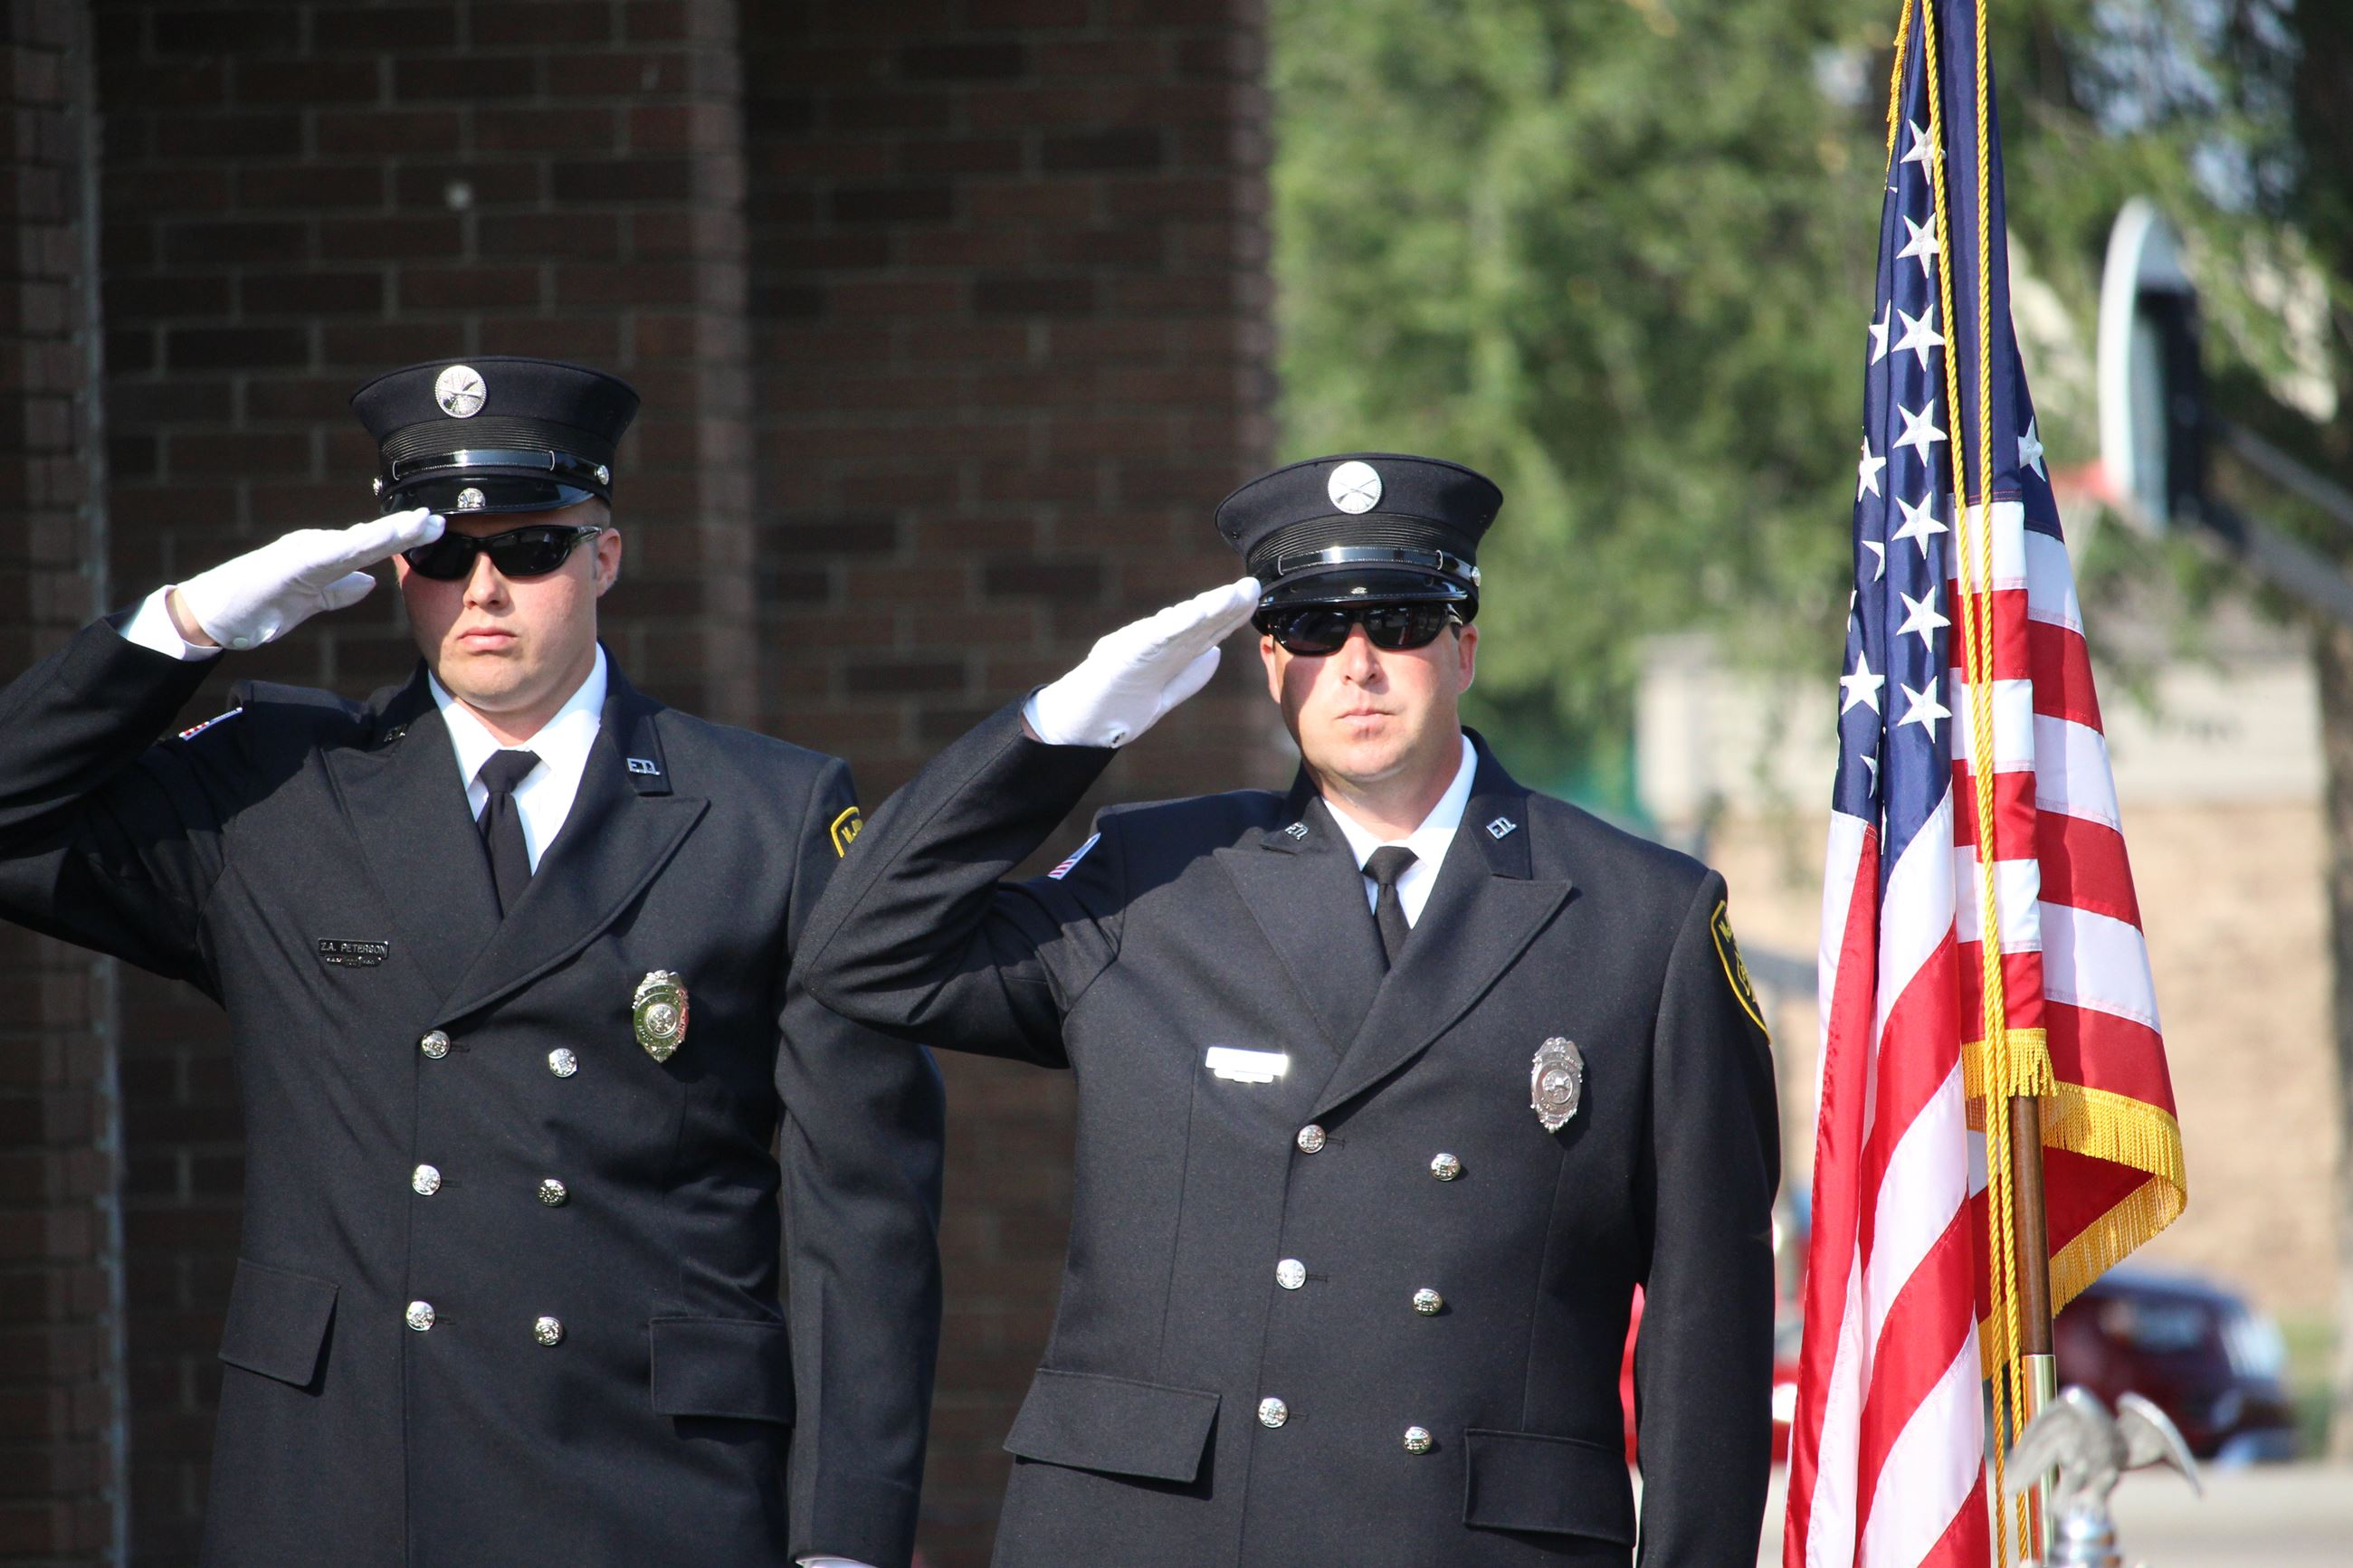 Two uniformed firefighters salute the American flag